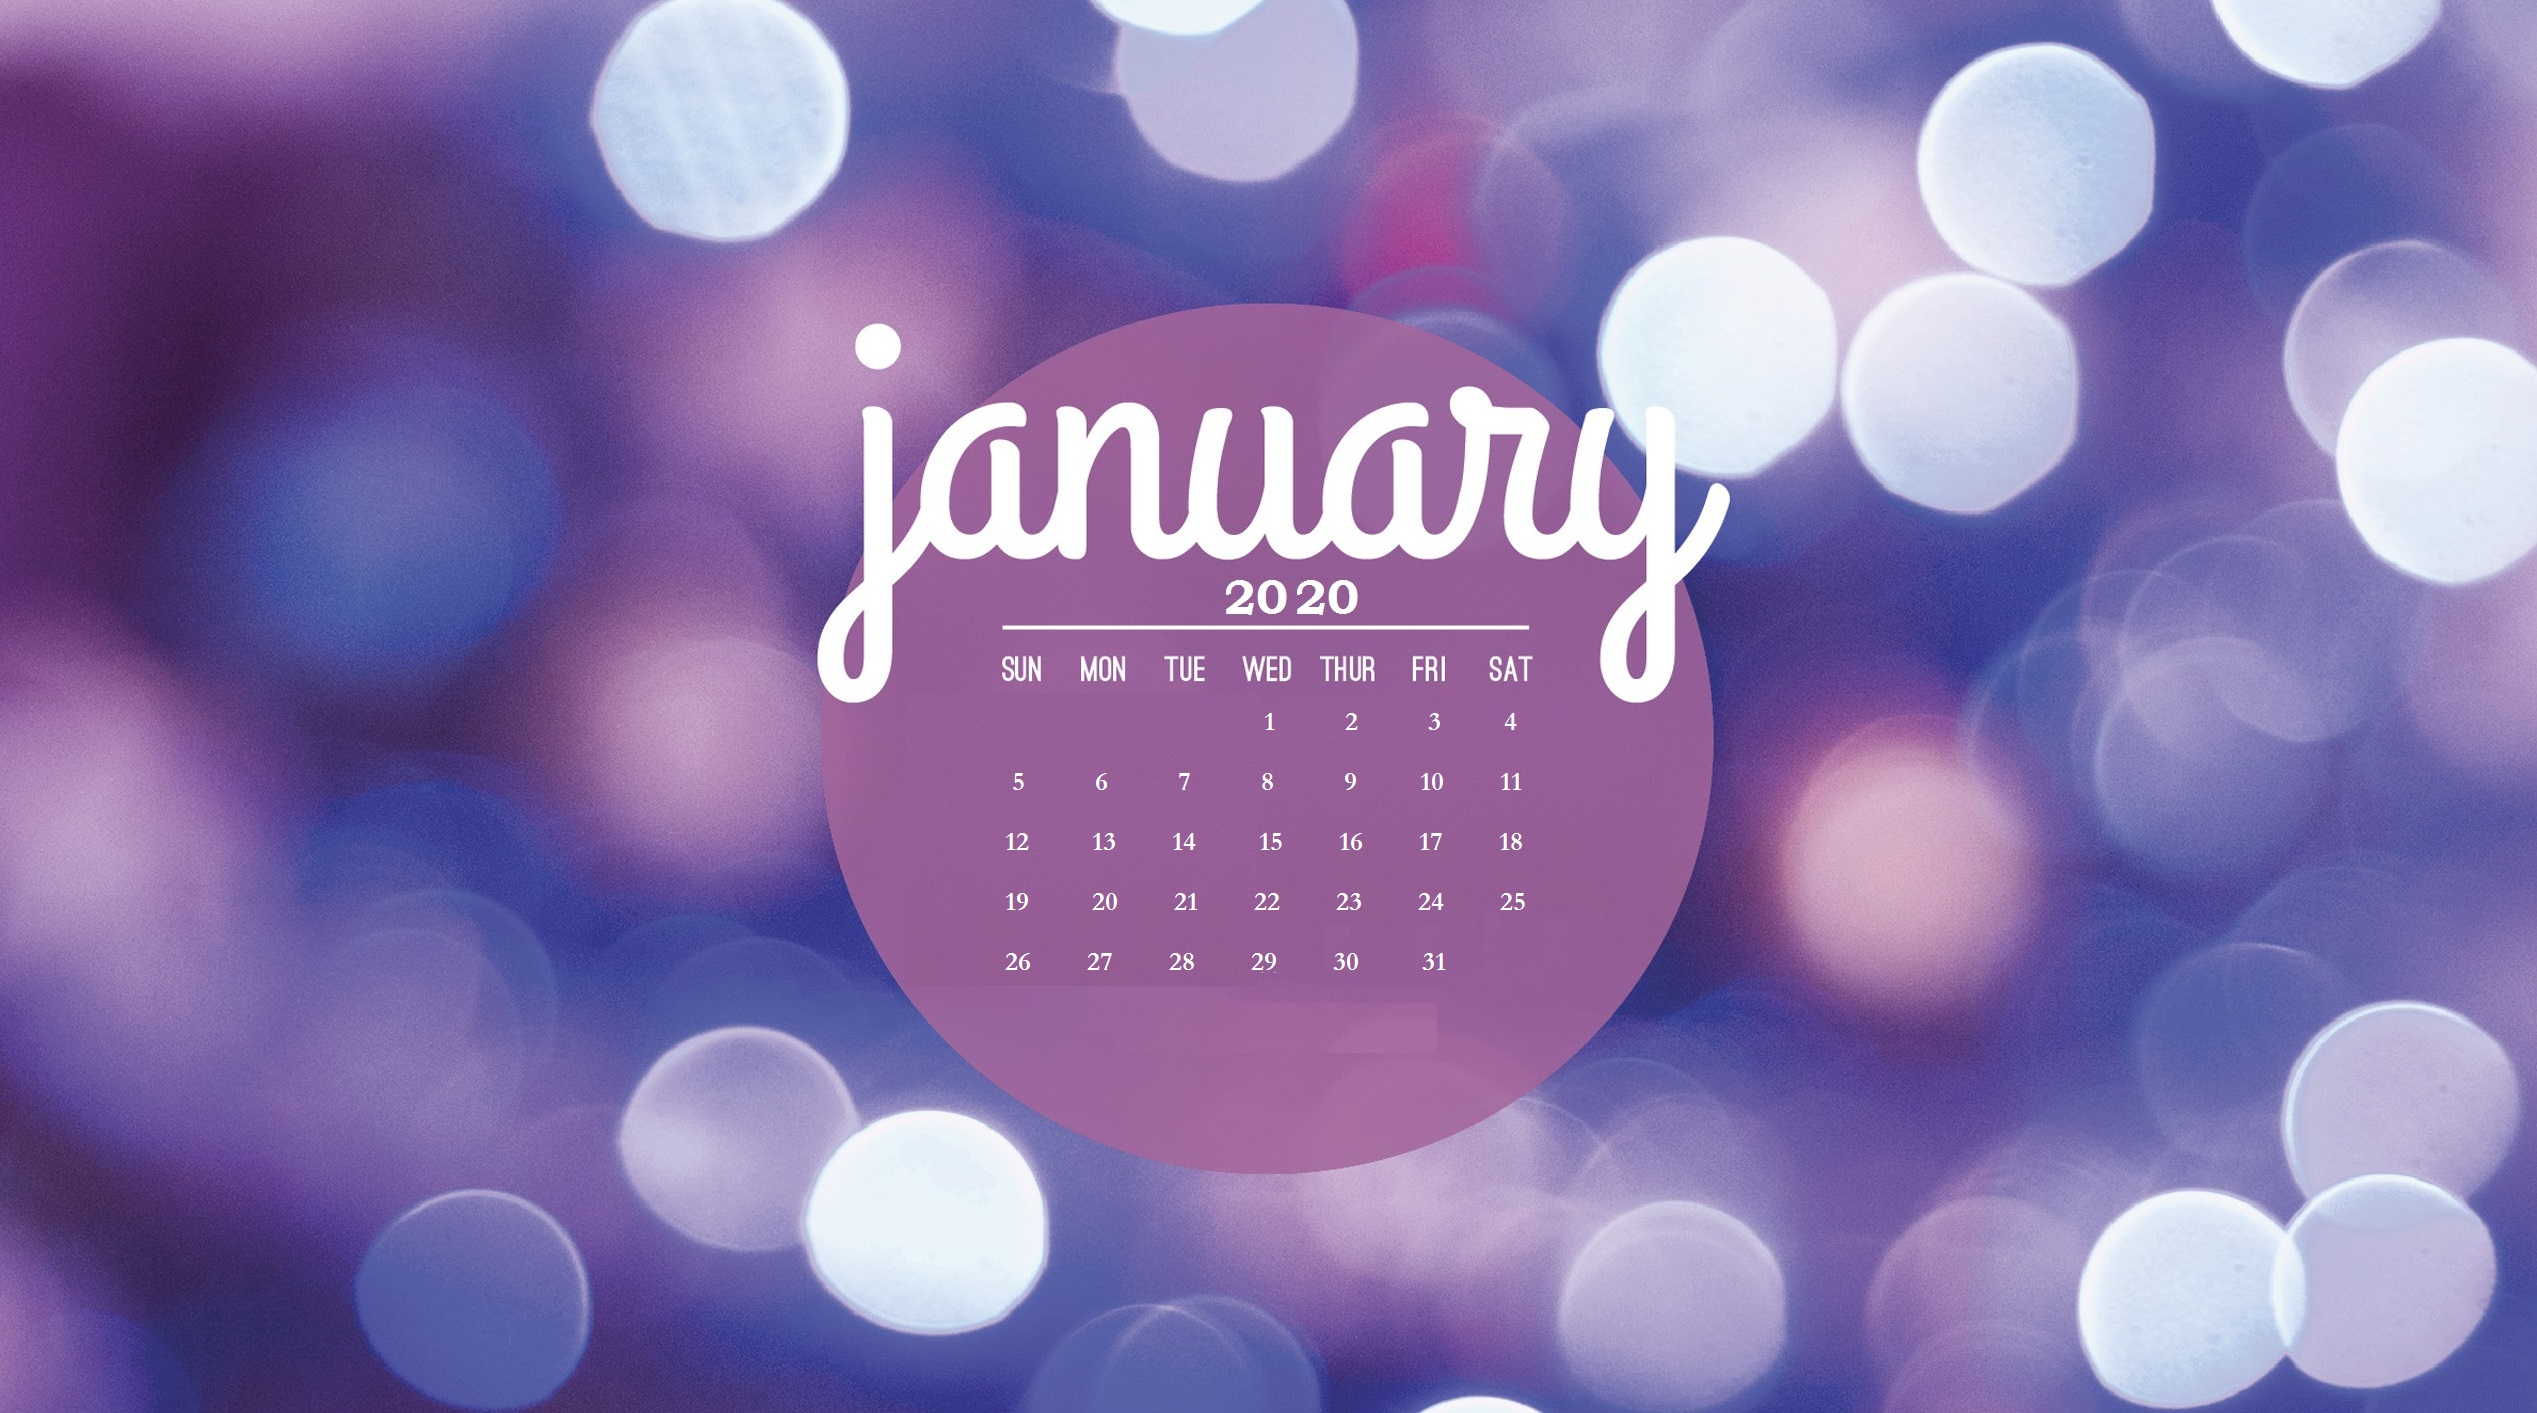 January 2020 Wallpaper Calendar Calendar 2019 2537x1413